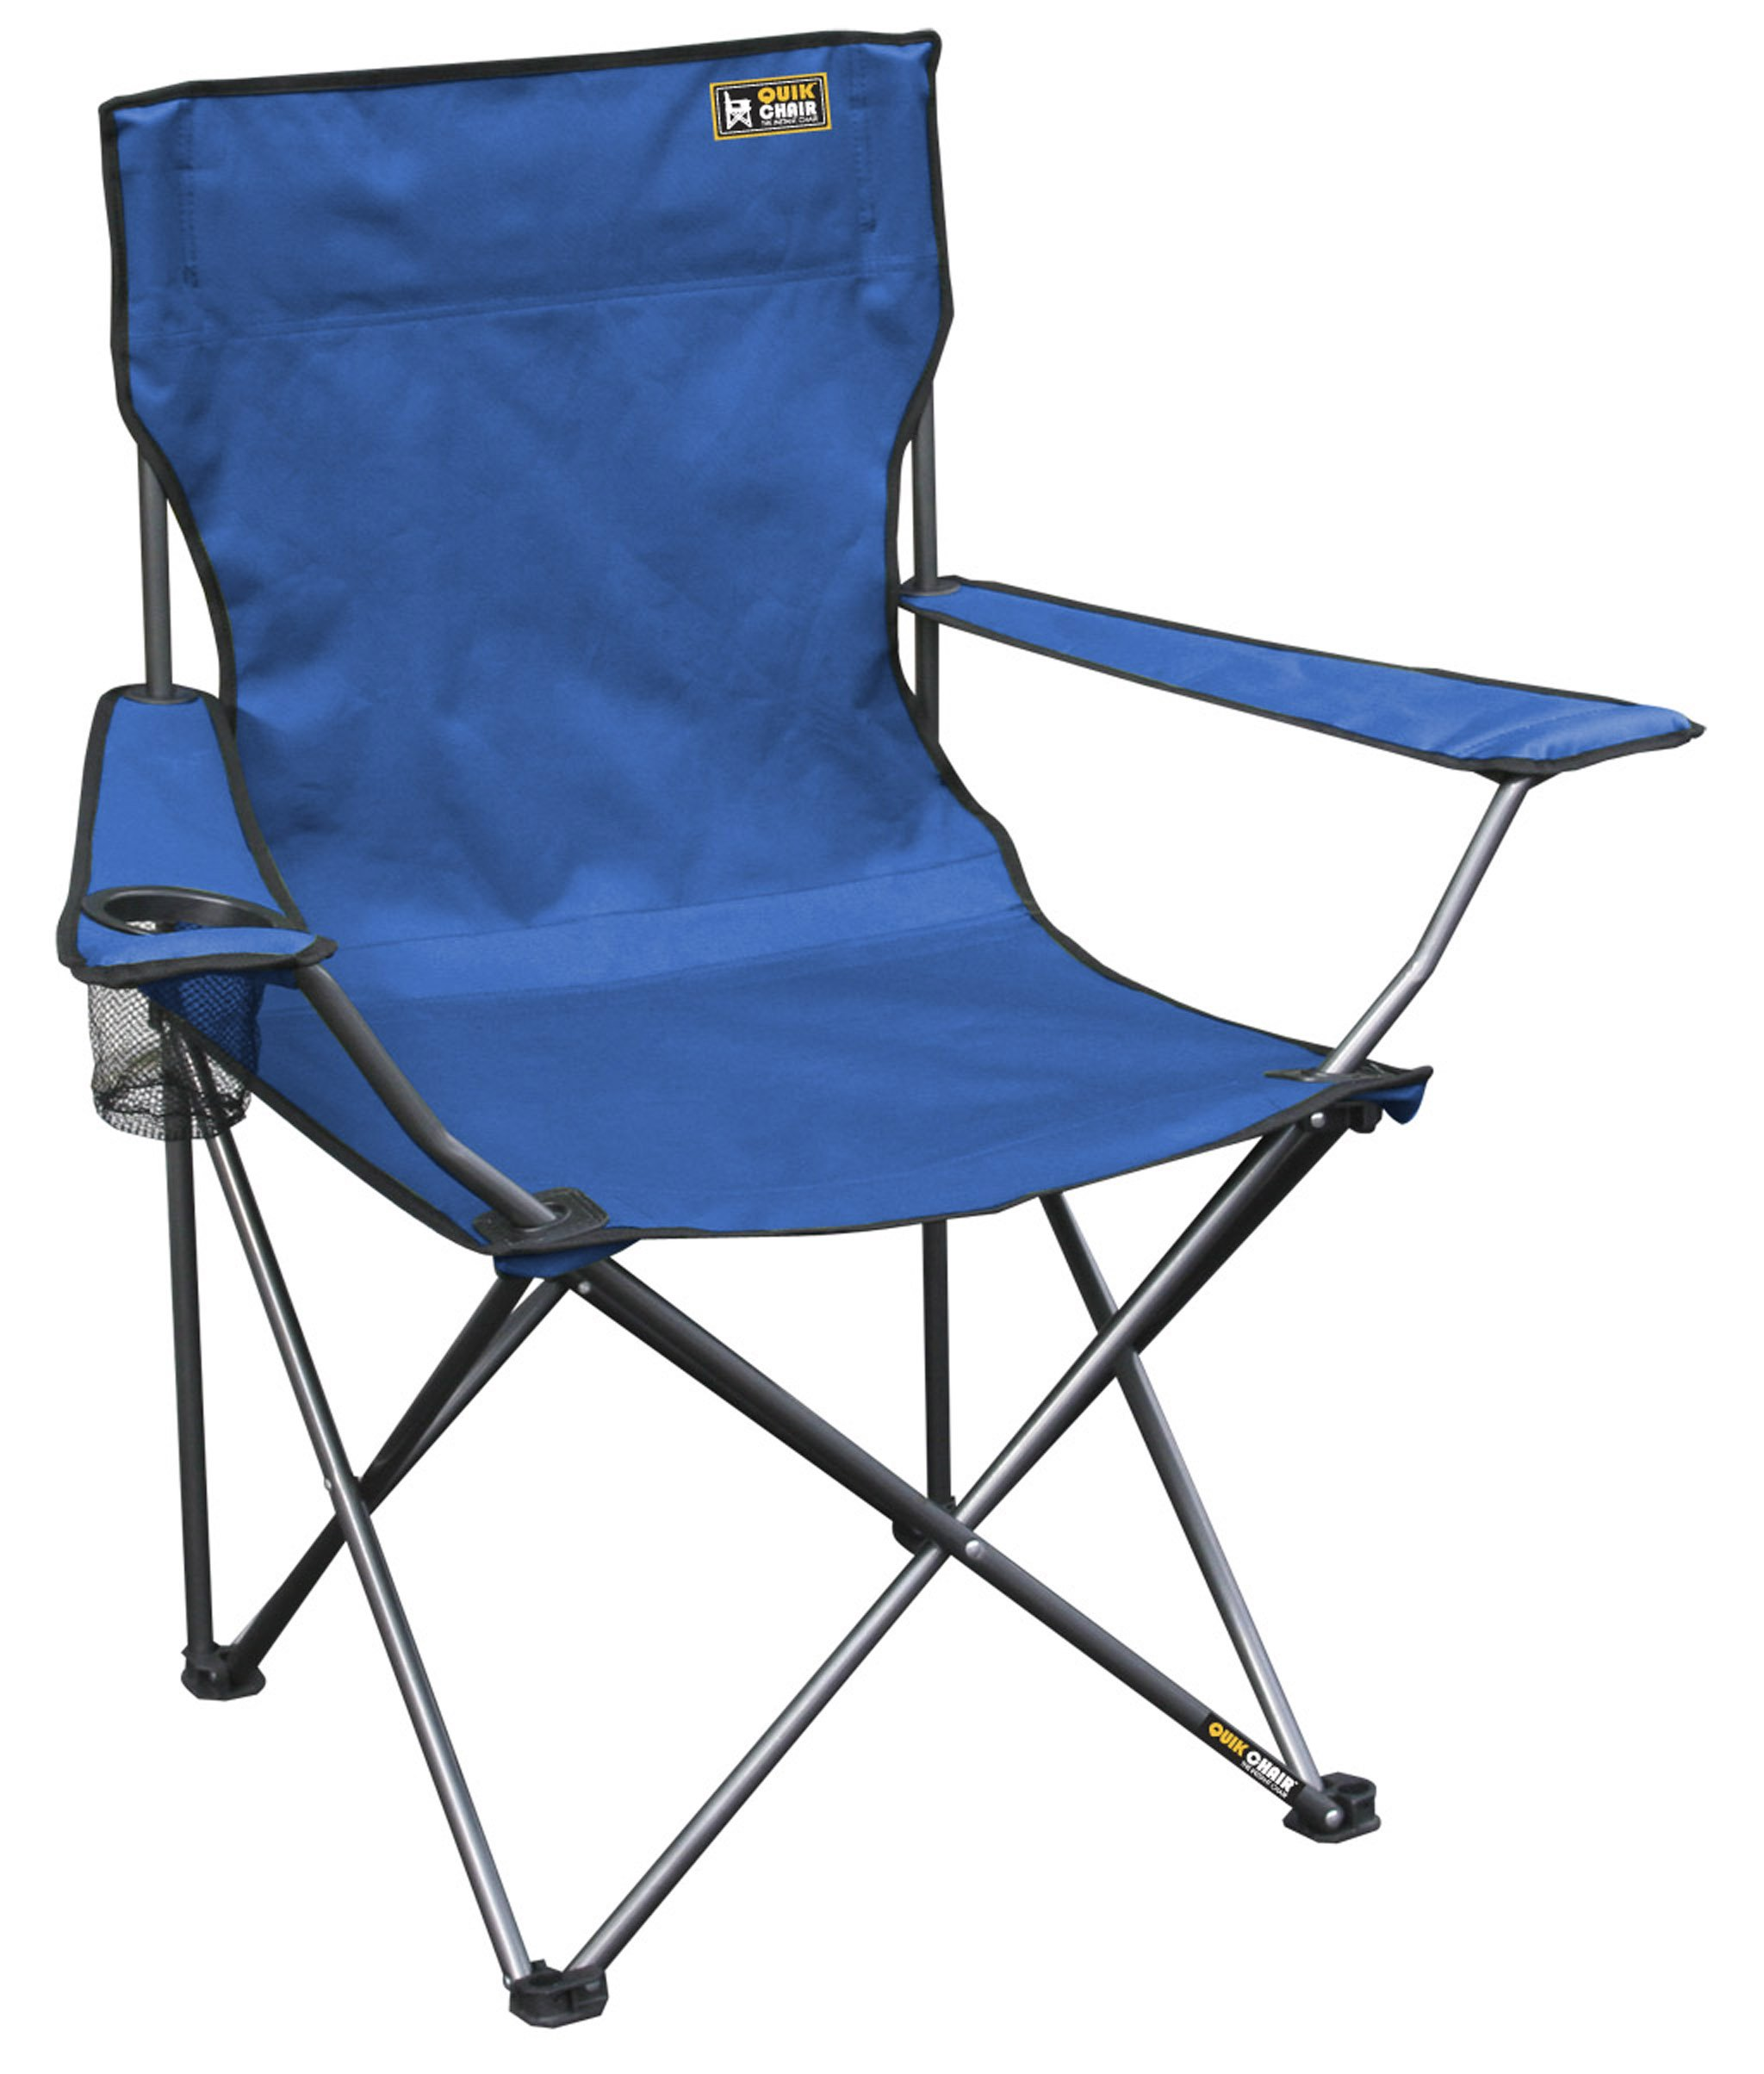 Heavy Duty Portable Folding Picnic Chair Camping Outdoor Seat Lawn